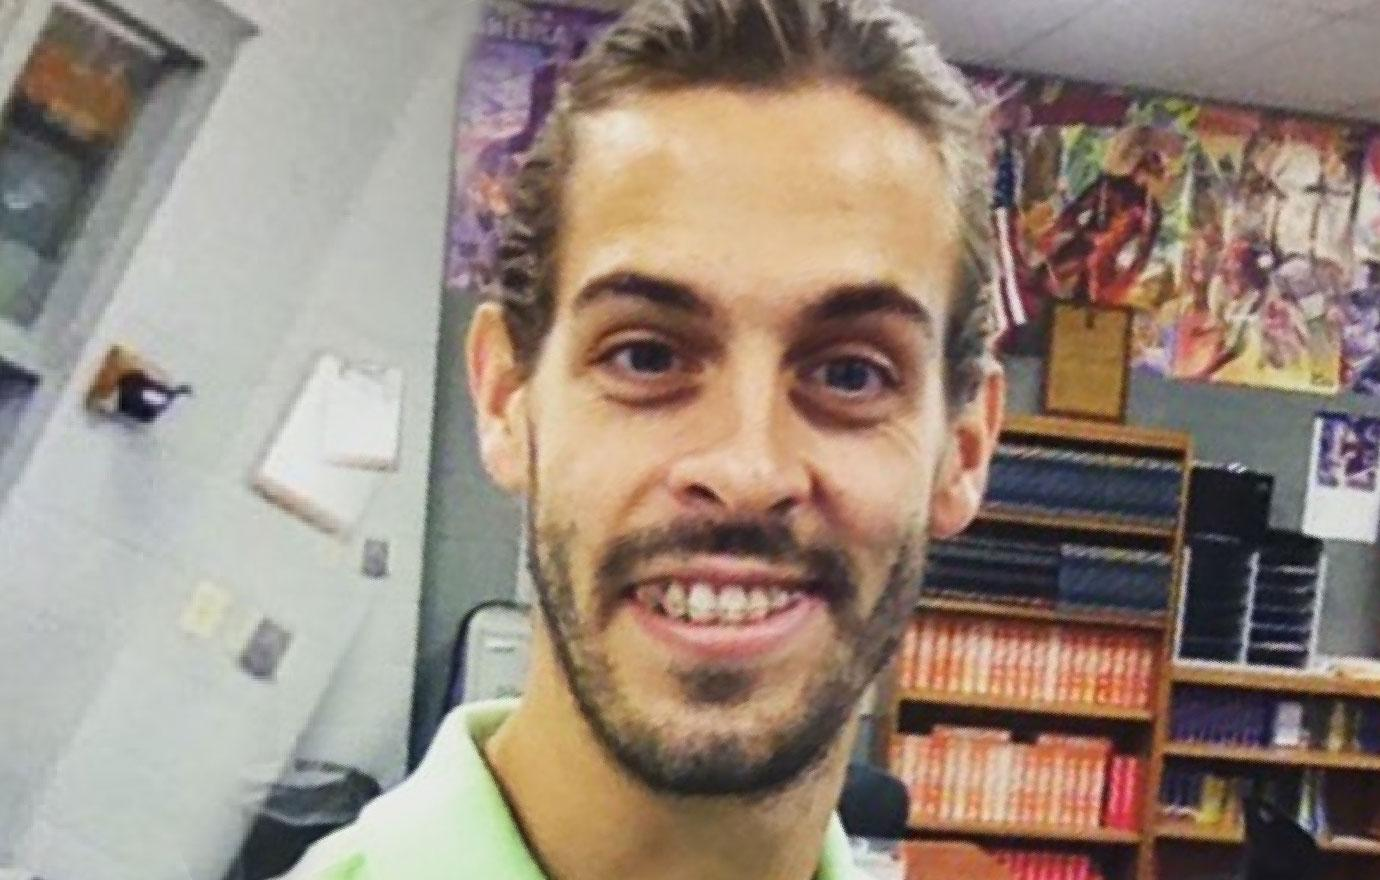 Derick Dillard Works At Religious Event